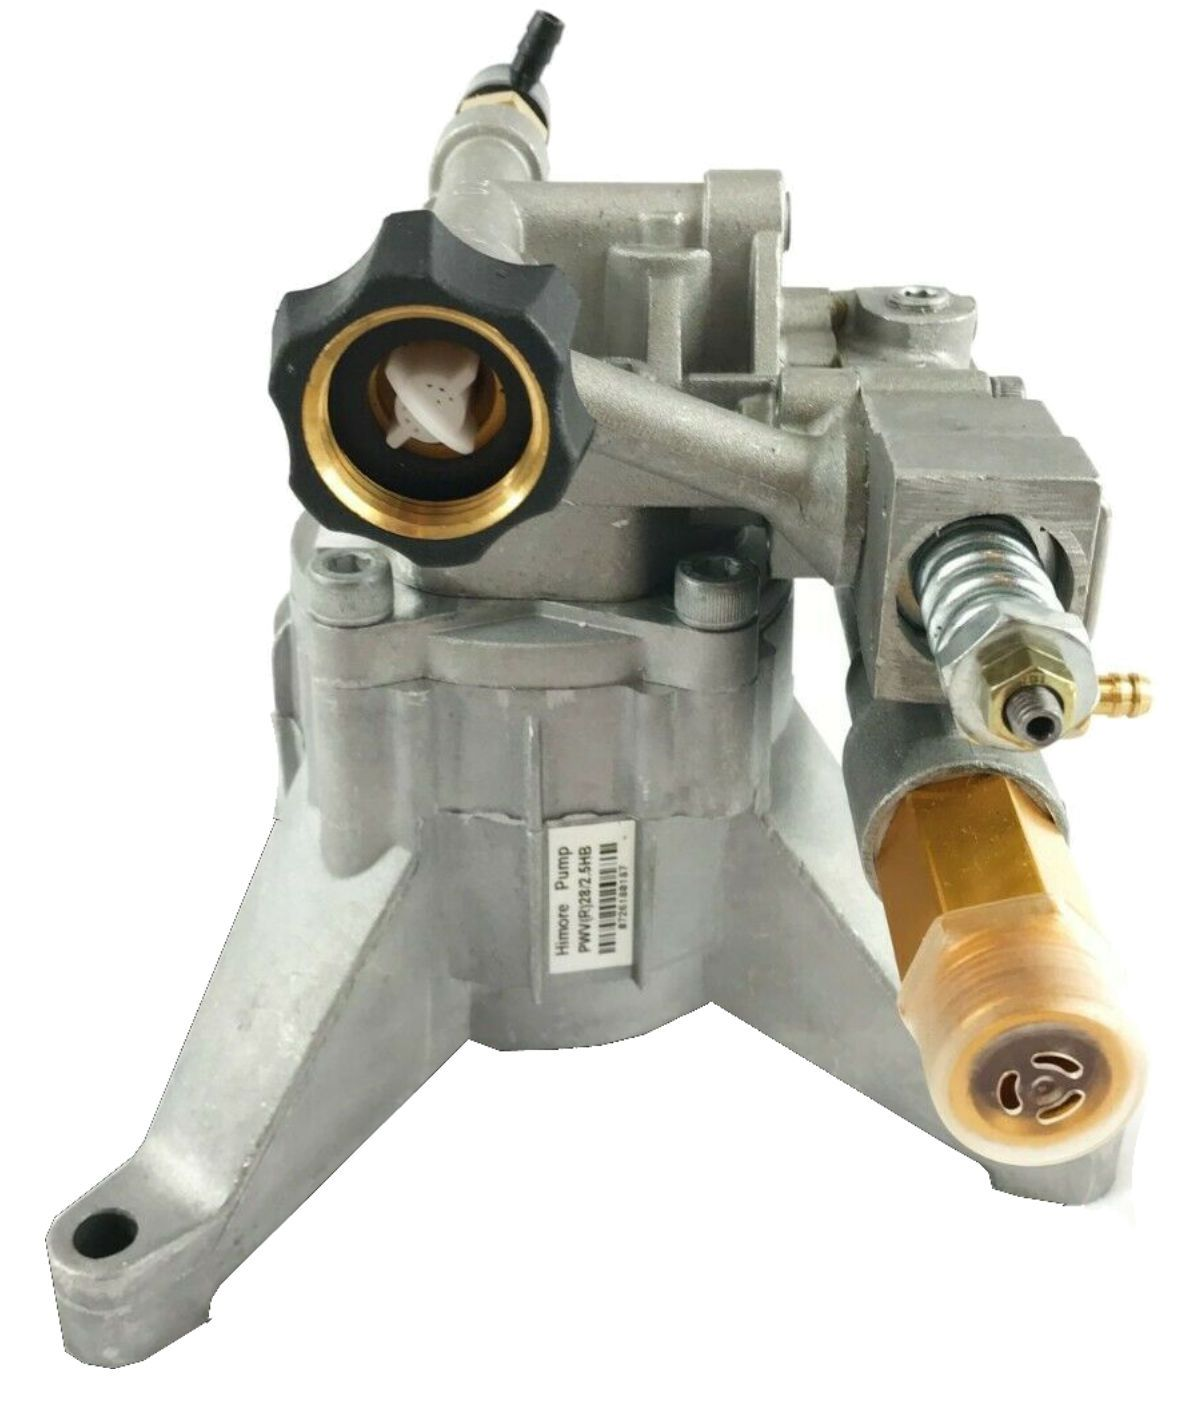 2700 PSI PRESSURE WASHER WATER PUMP Campbell Hausfeld PW1753V2LE - AE-Power